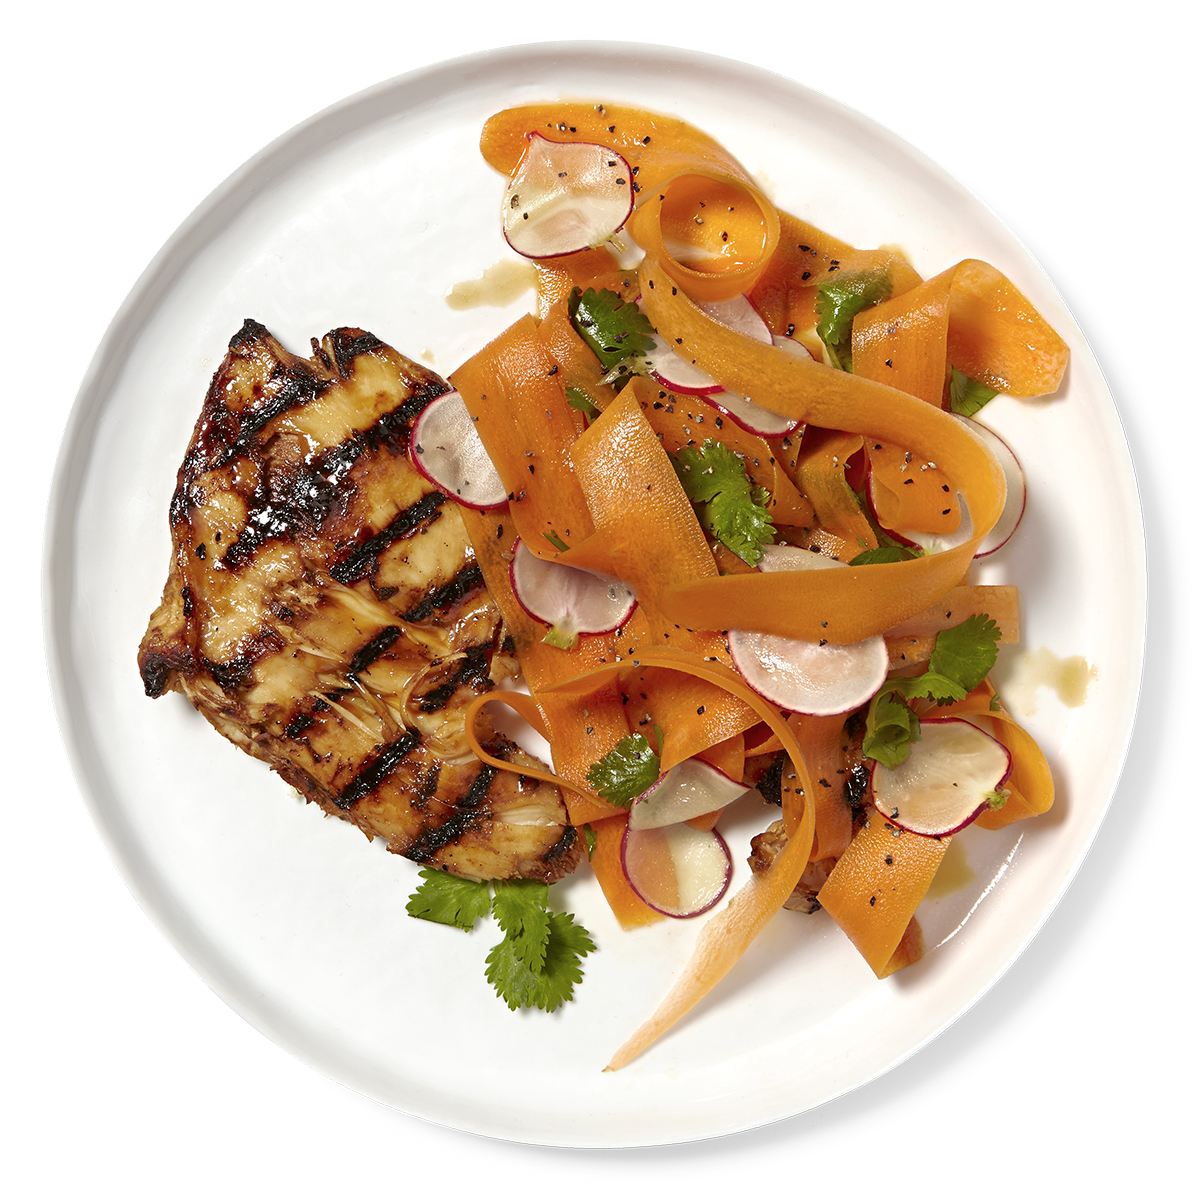 Grilled Chicken with Carrot-Ginger Salad